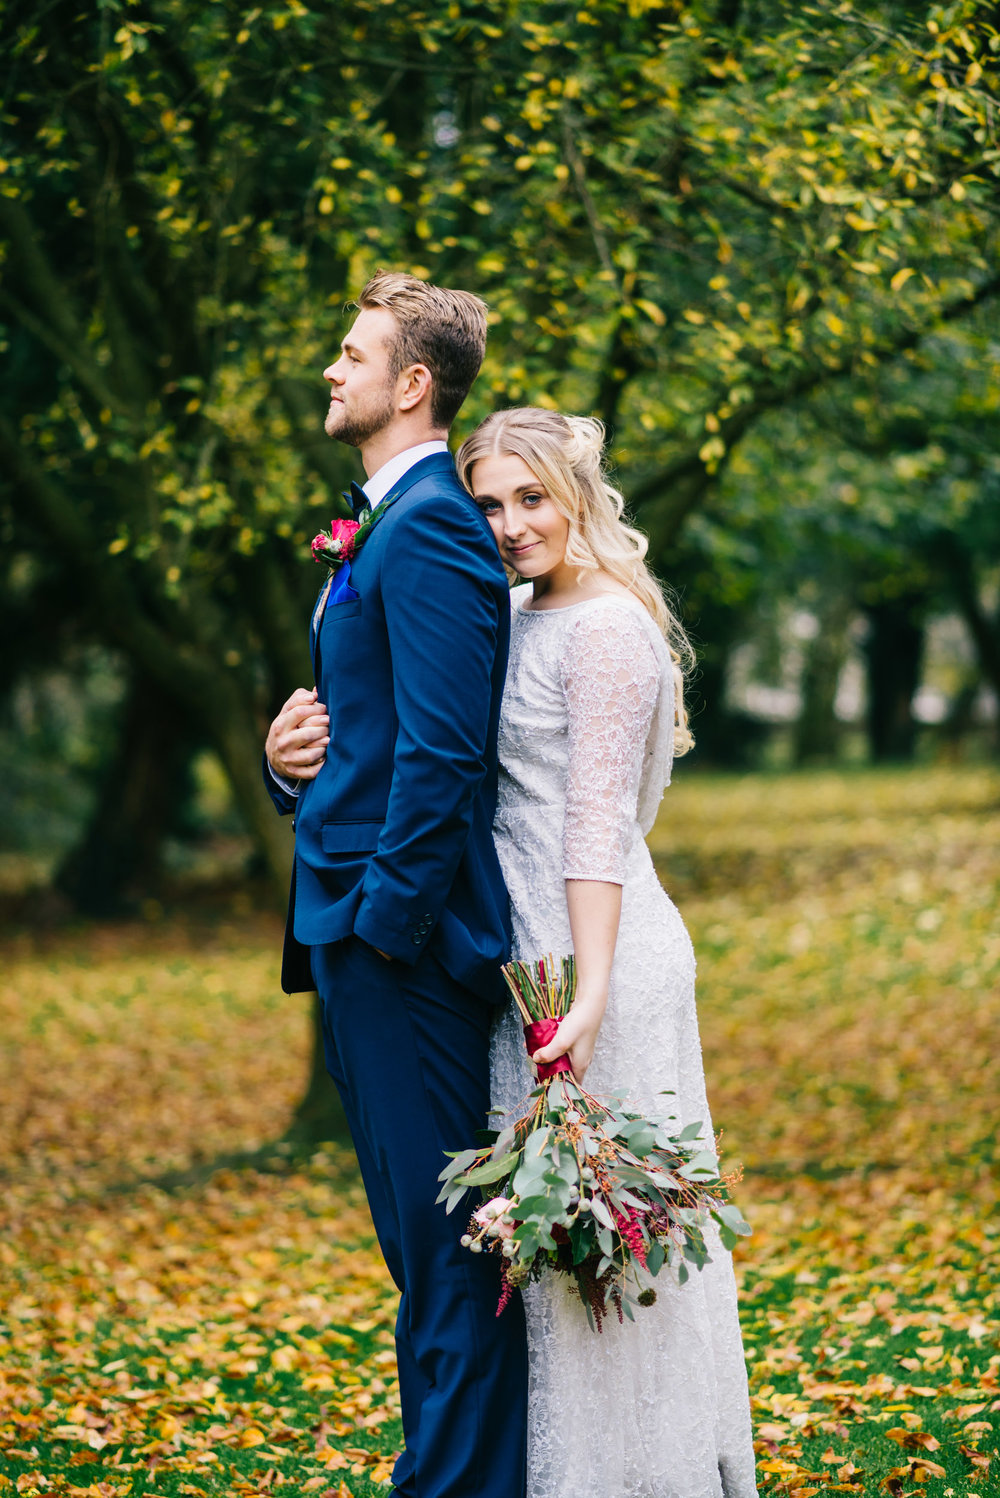 Mitton Hall, Wedding Venue Lancashire, Styled Wedding Workshop36